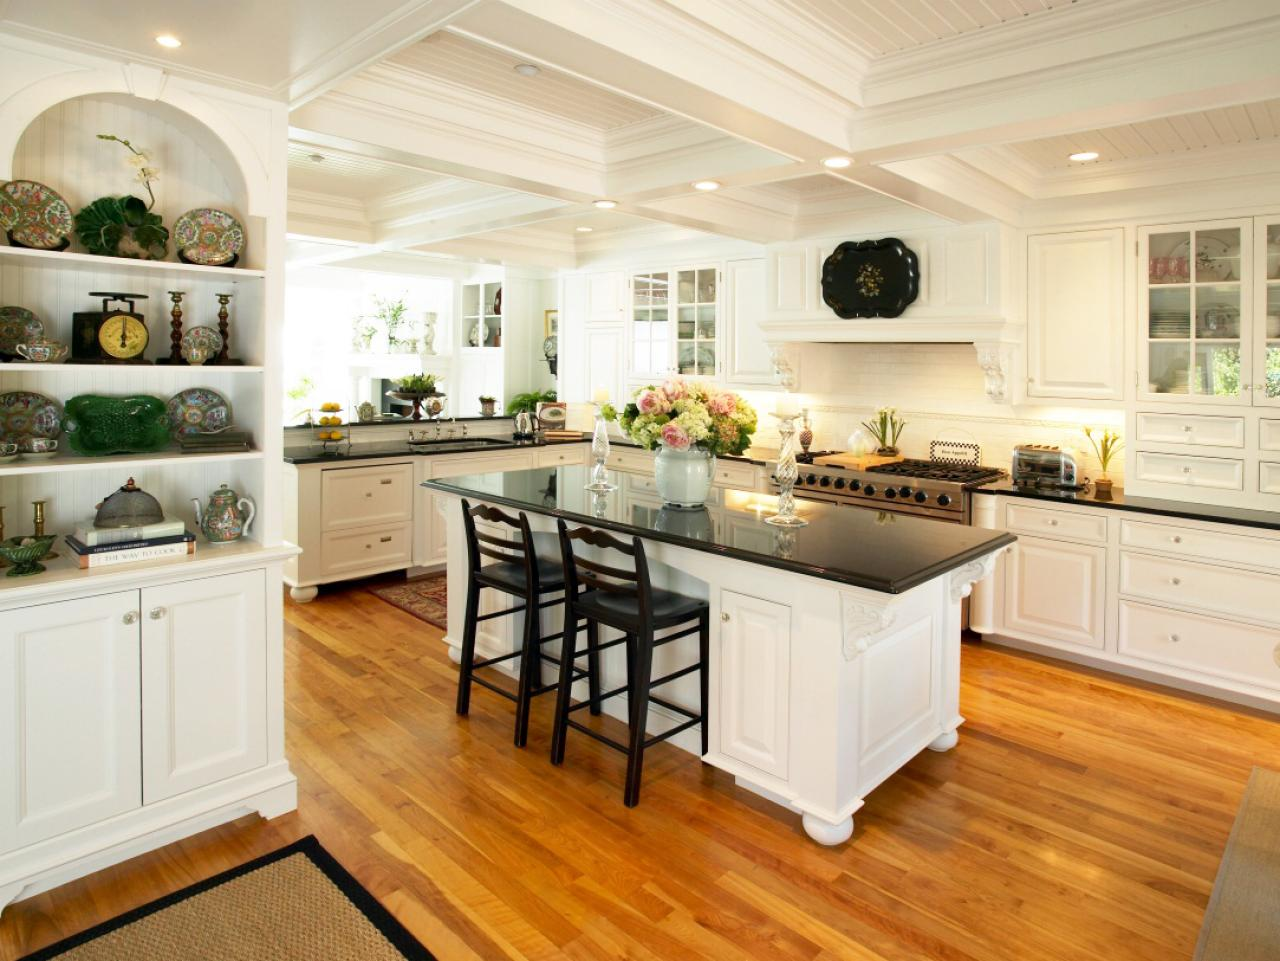 Mediterranean kitchens hgtv for Open kitchen style